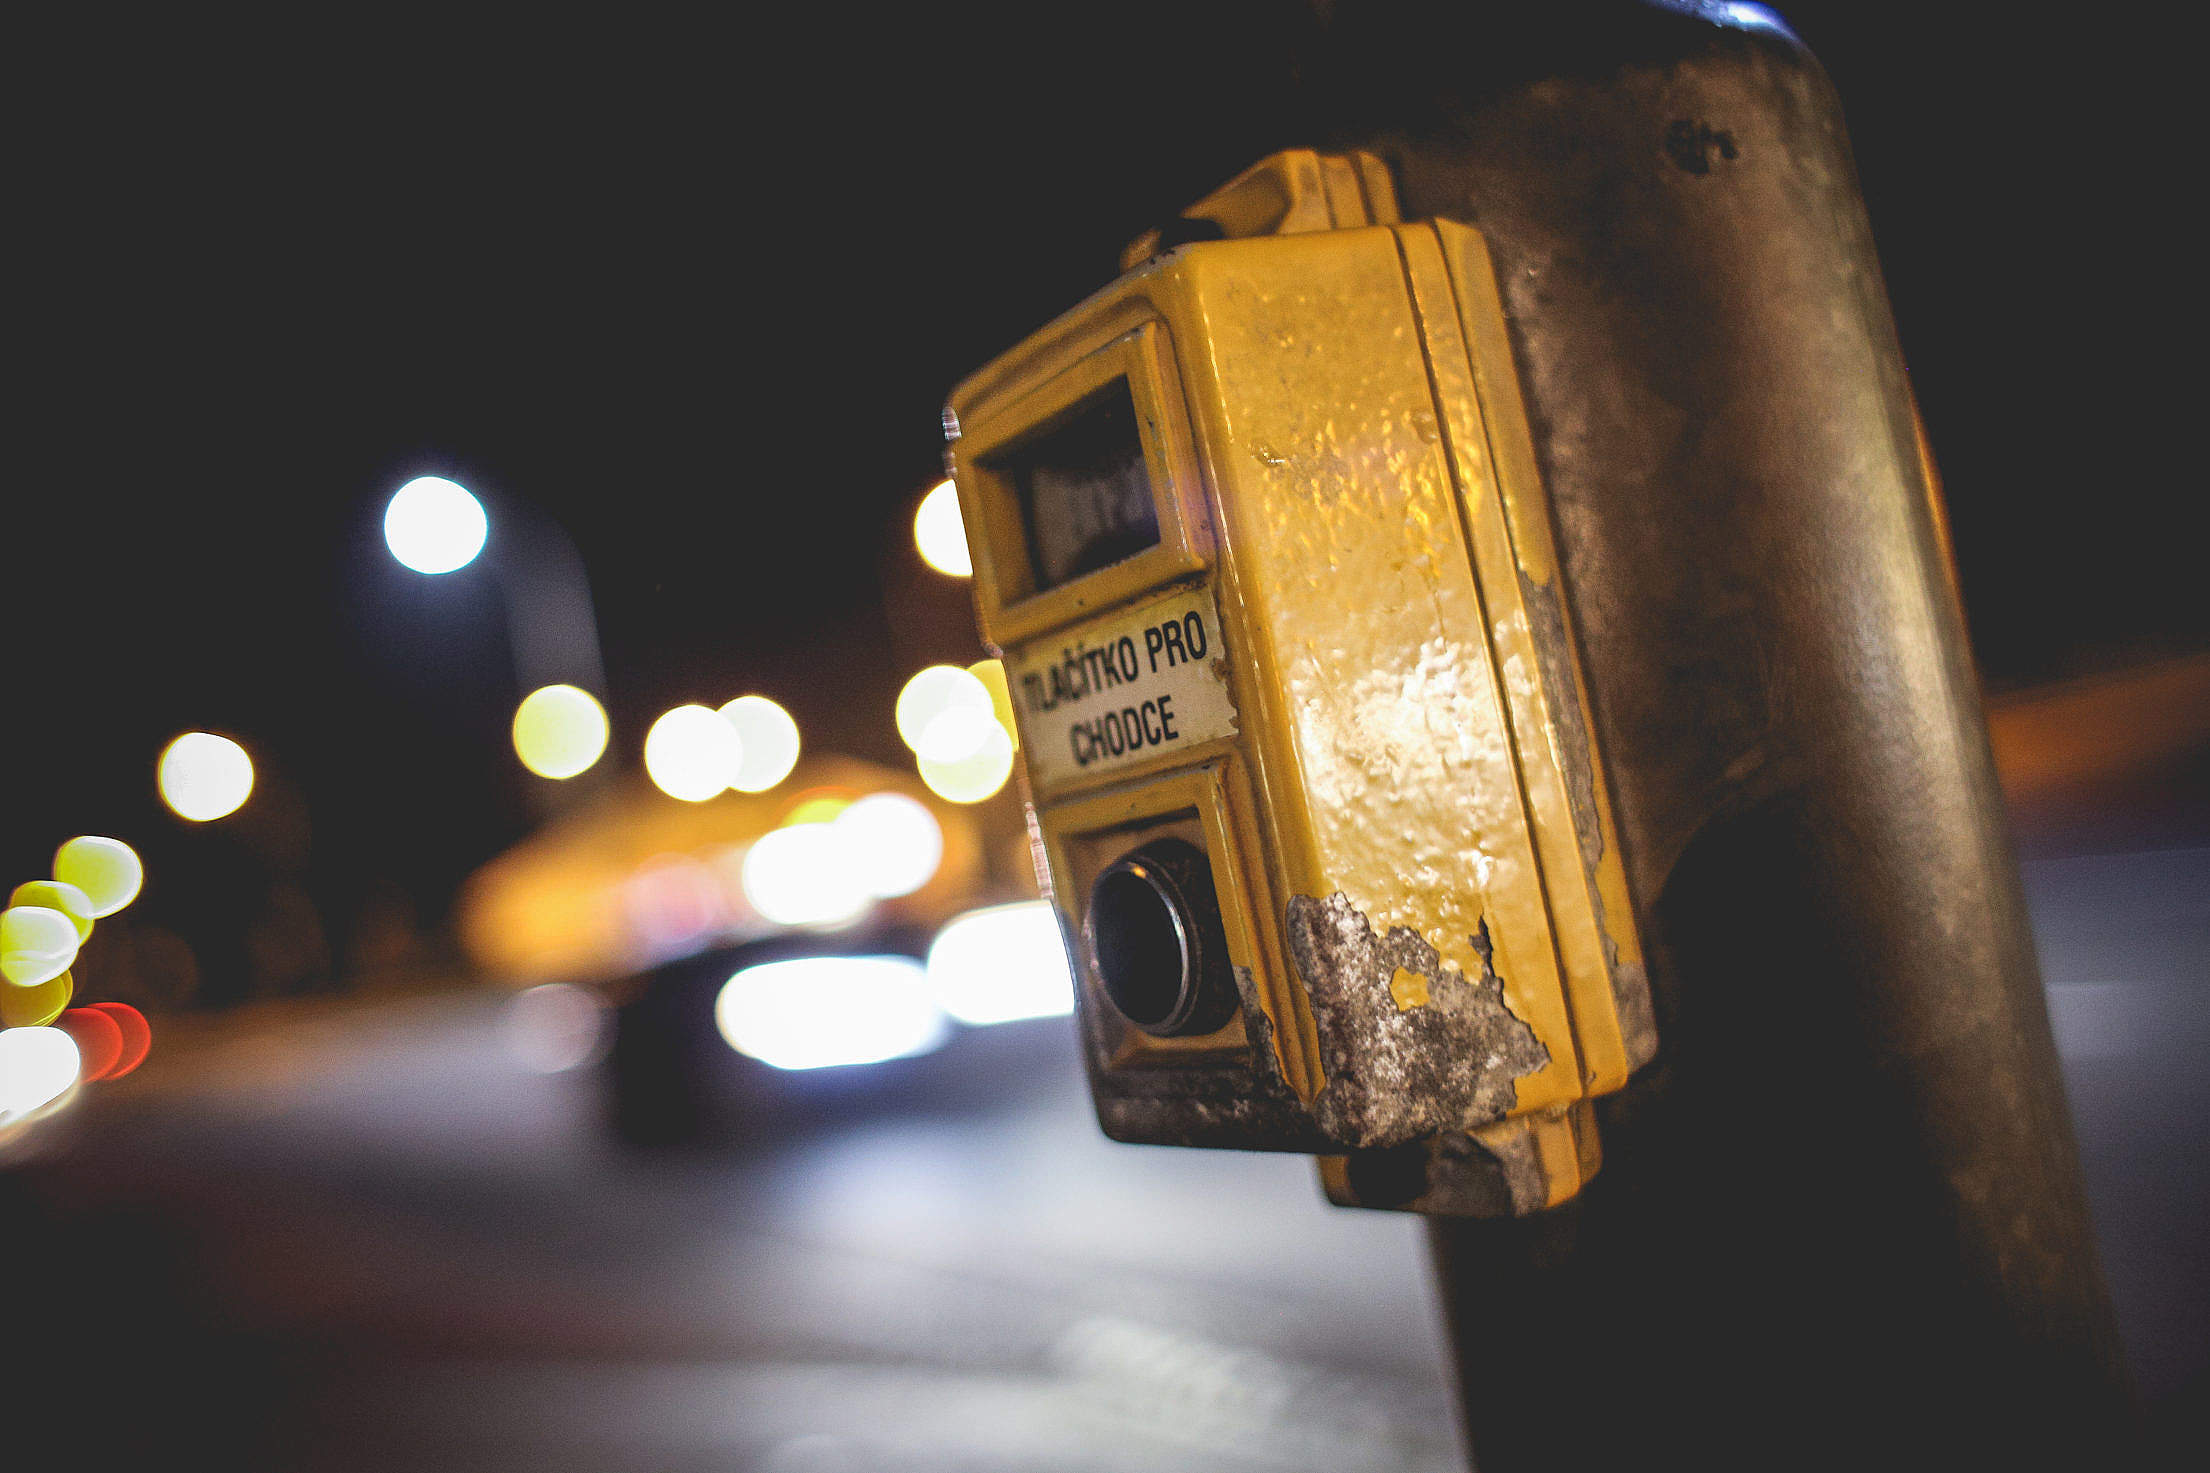 Push Button For Walk at Night Free Stock Photo